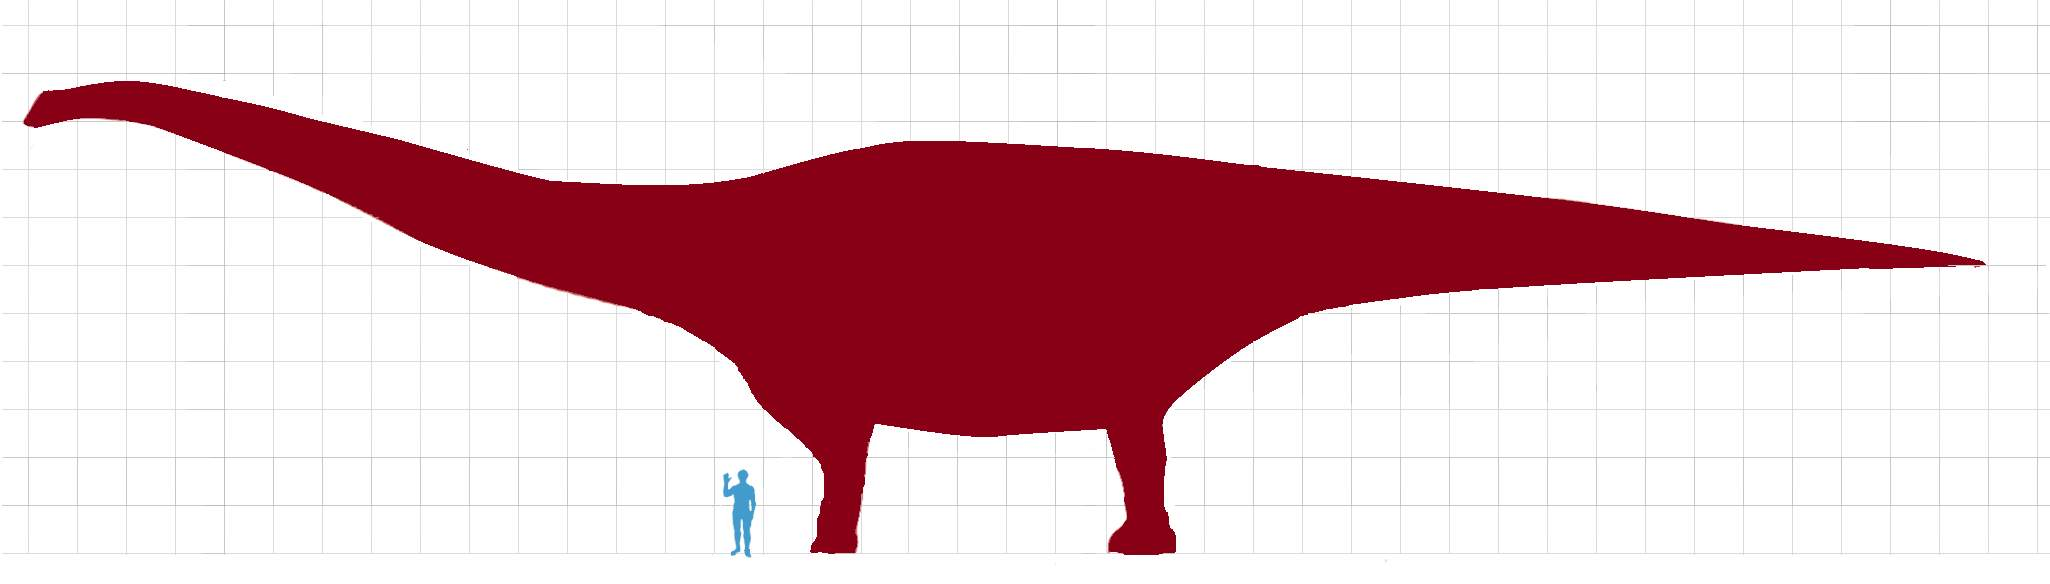 Patagotitan mayorum vs human size comparison